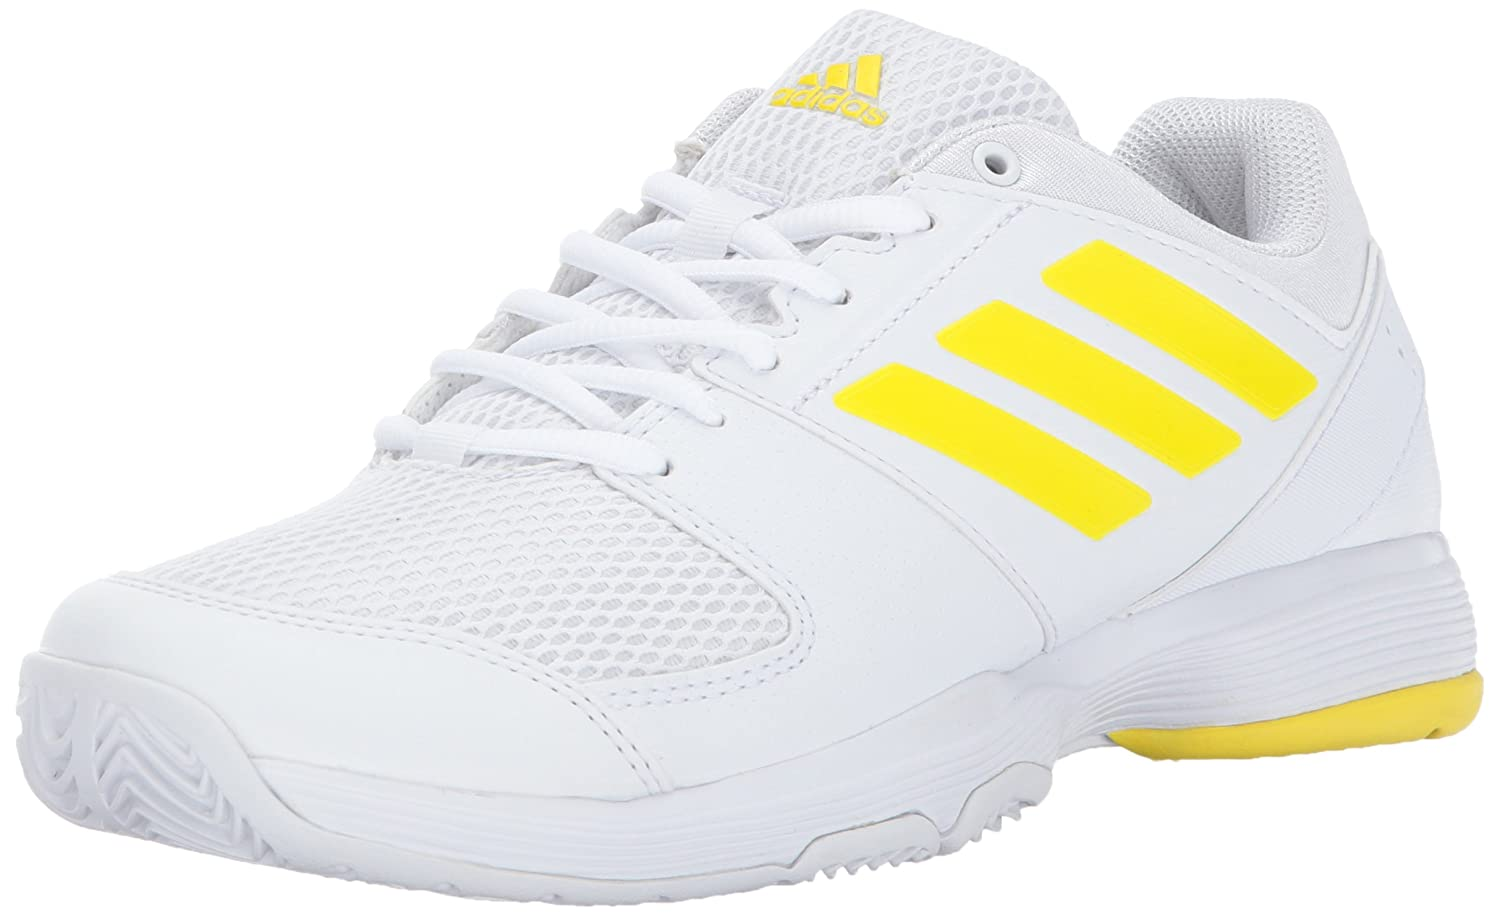 adidas Women's Barricade Court Tennis Shoes B01NAIXGB6 9.5 M US|White/Lemon Peel/White